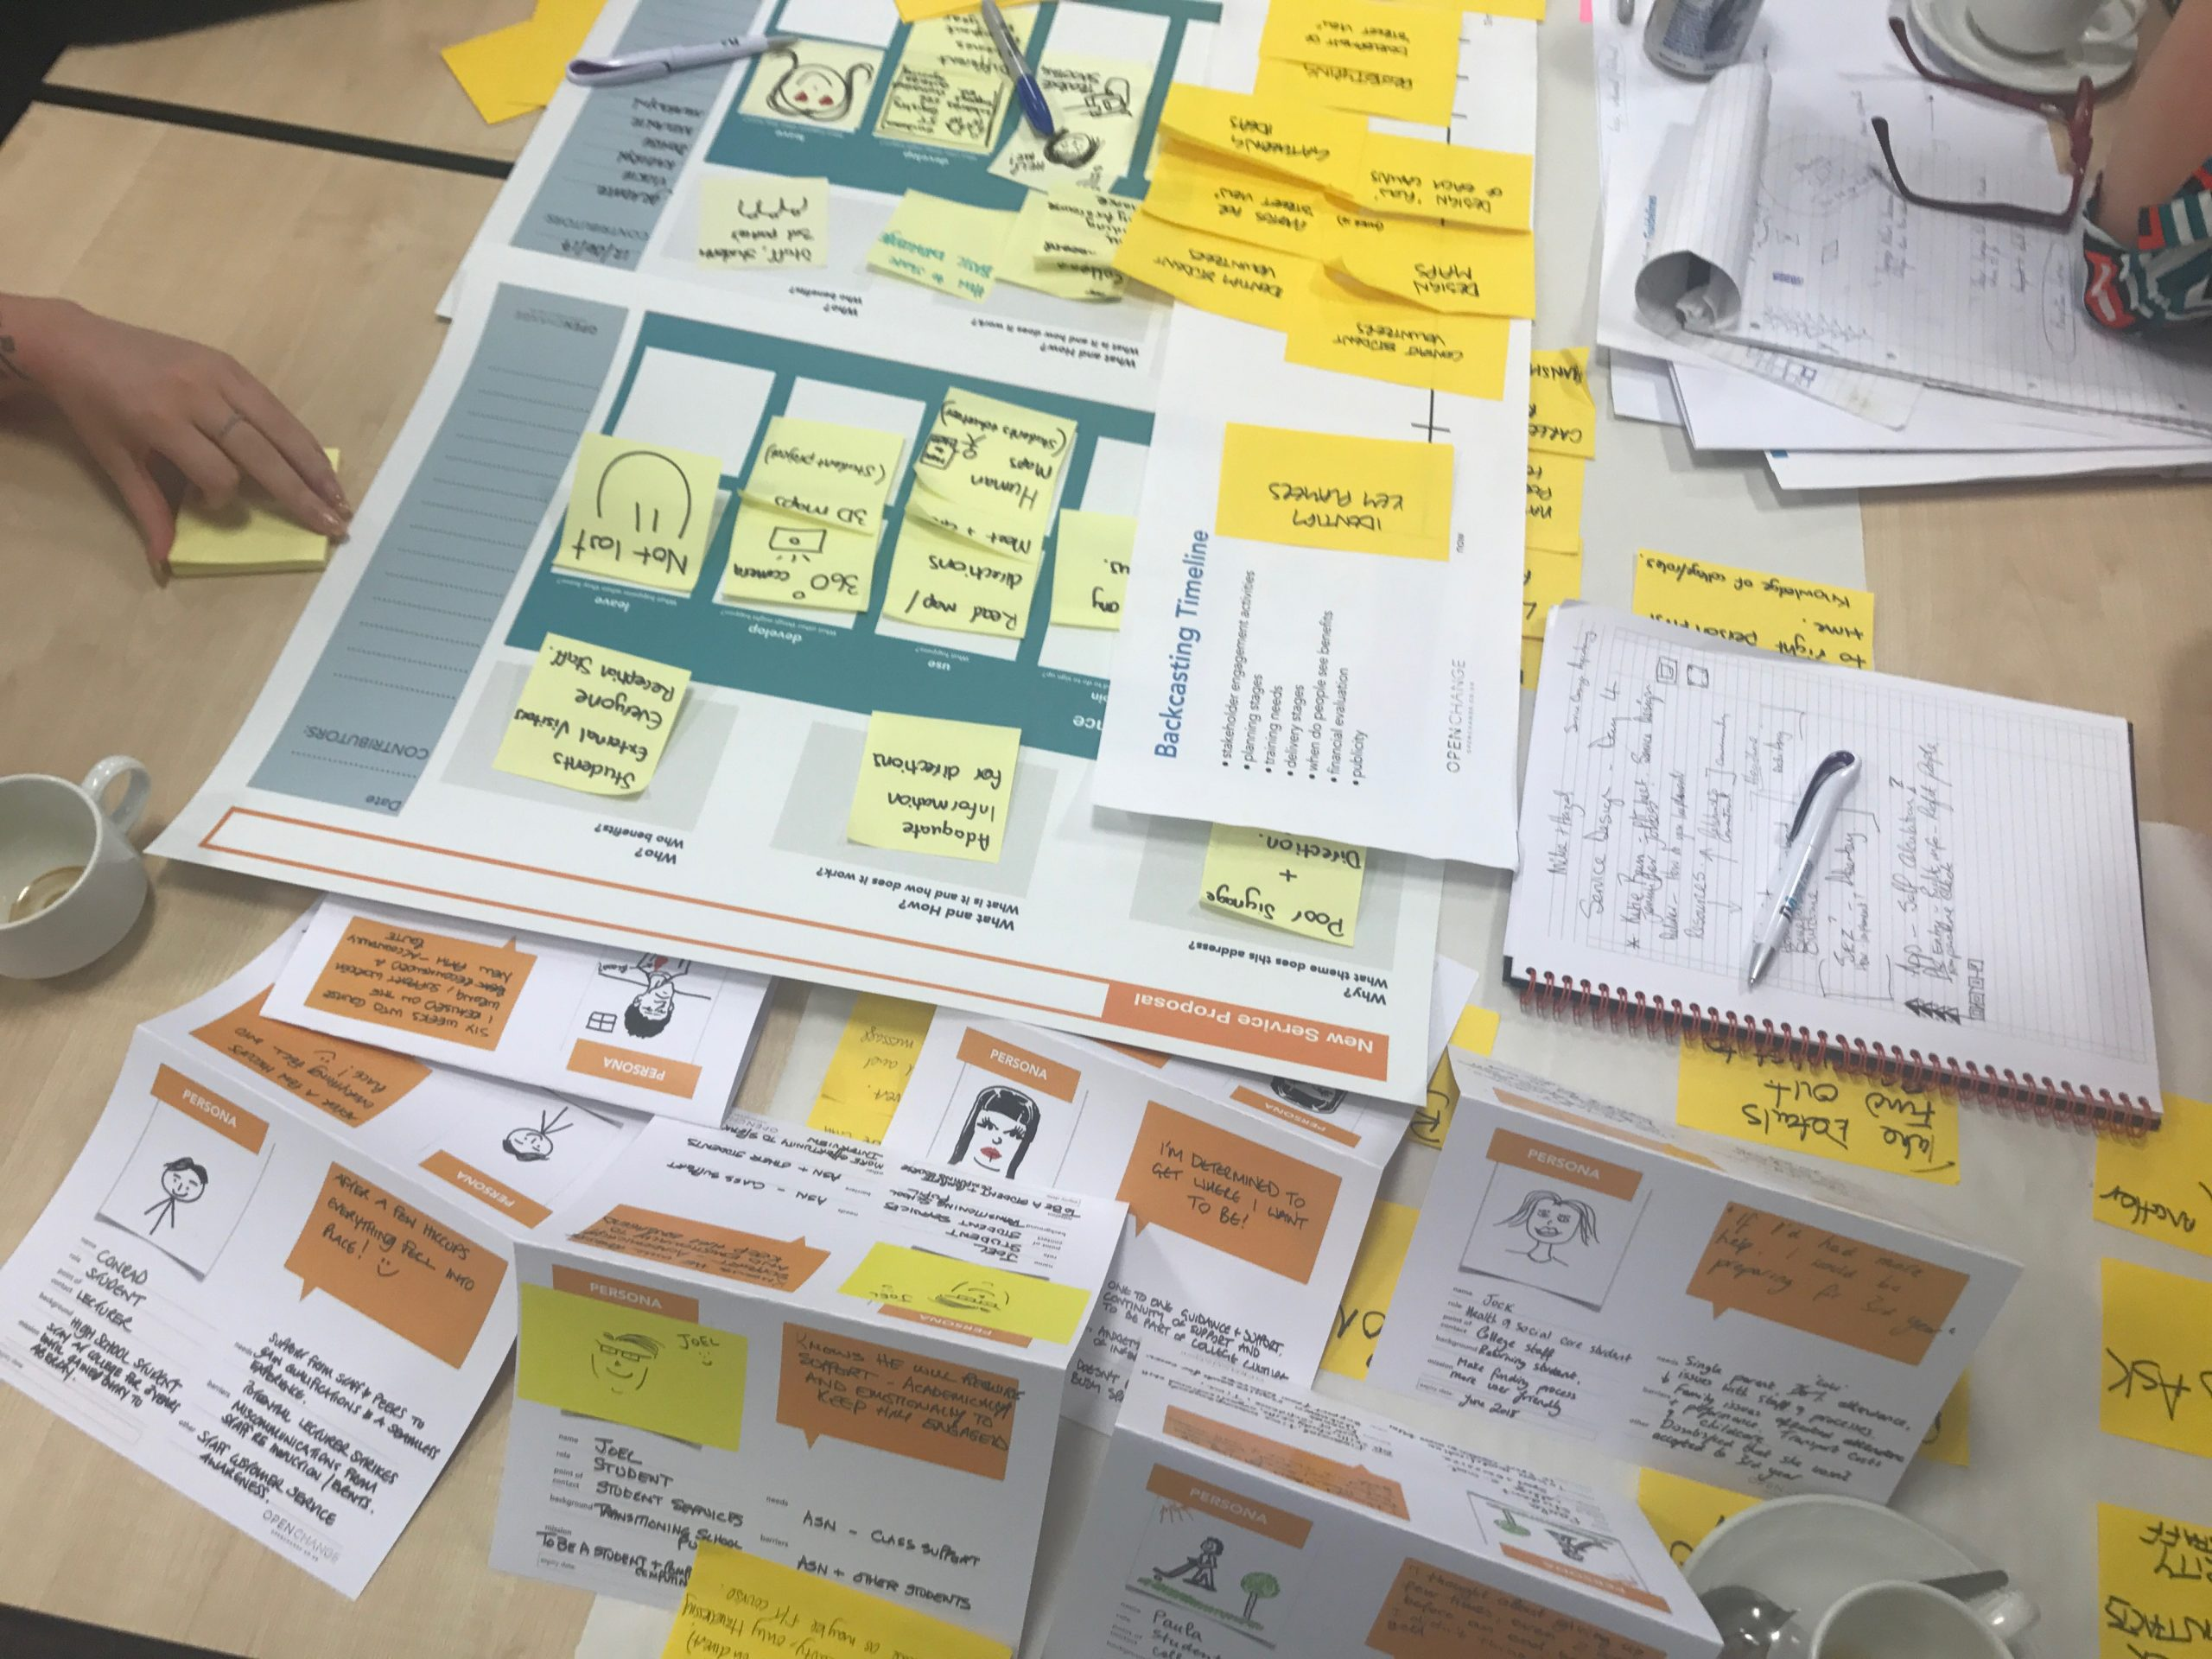 Templates with post its